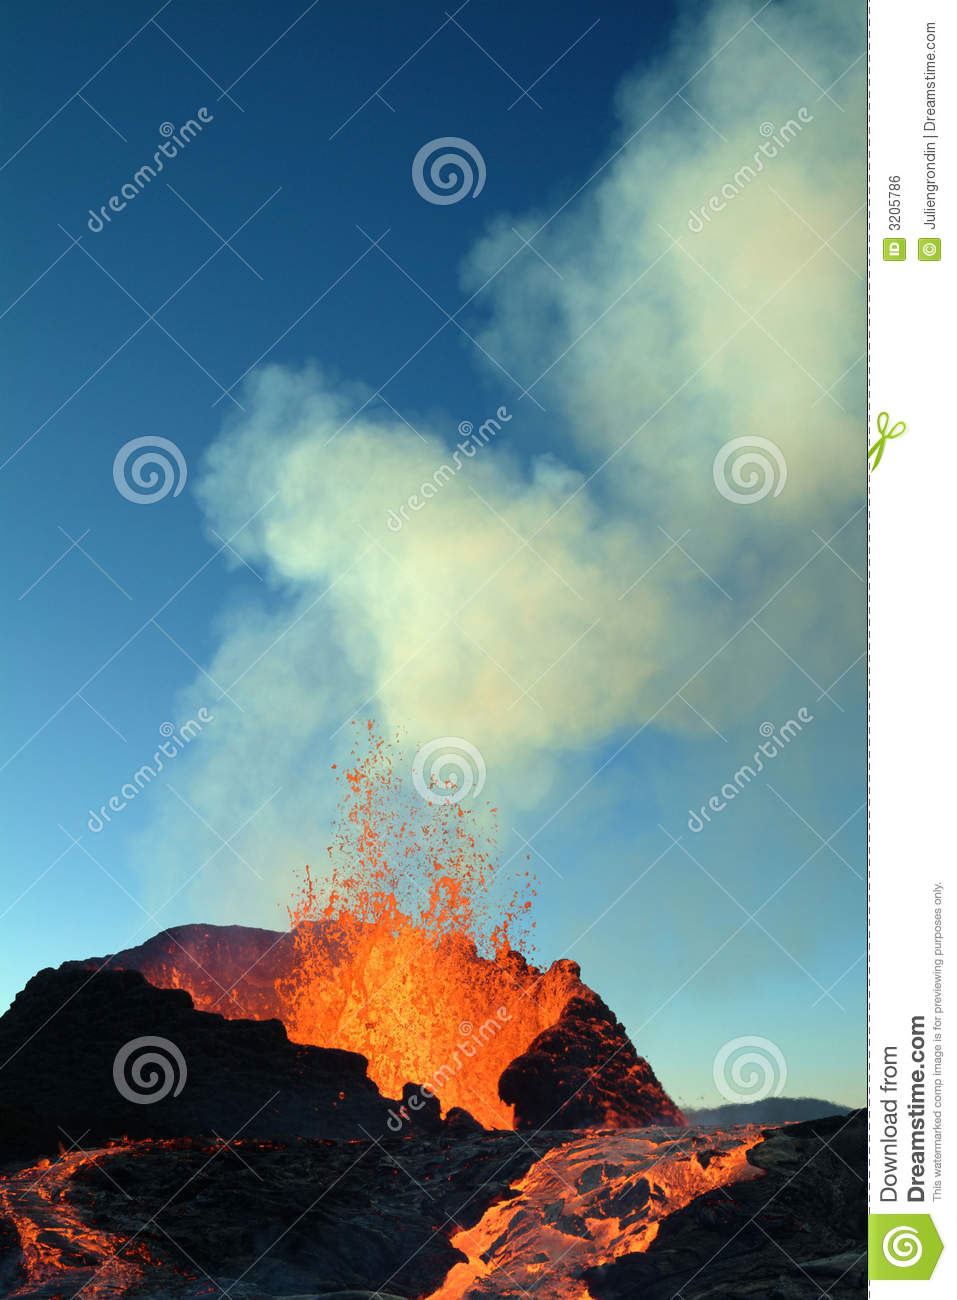 Vulkaneruption